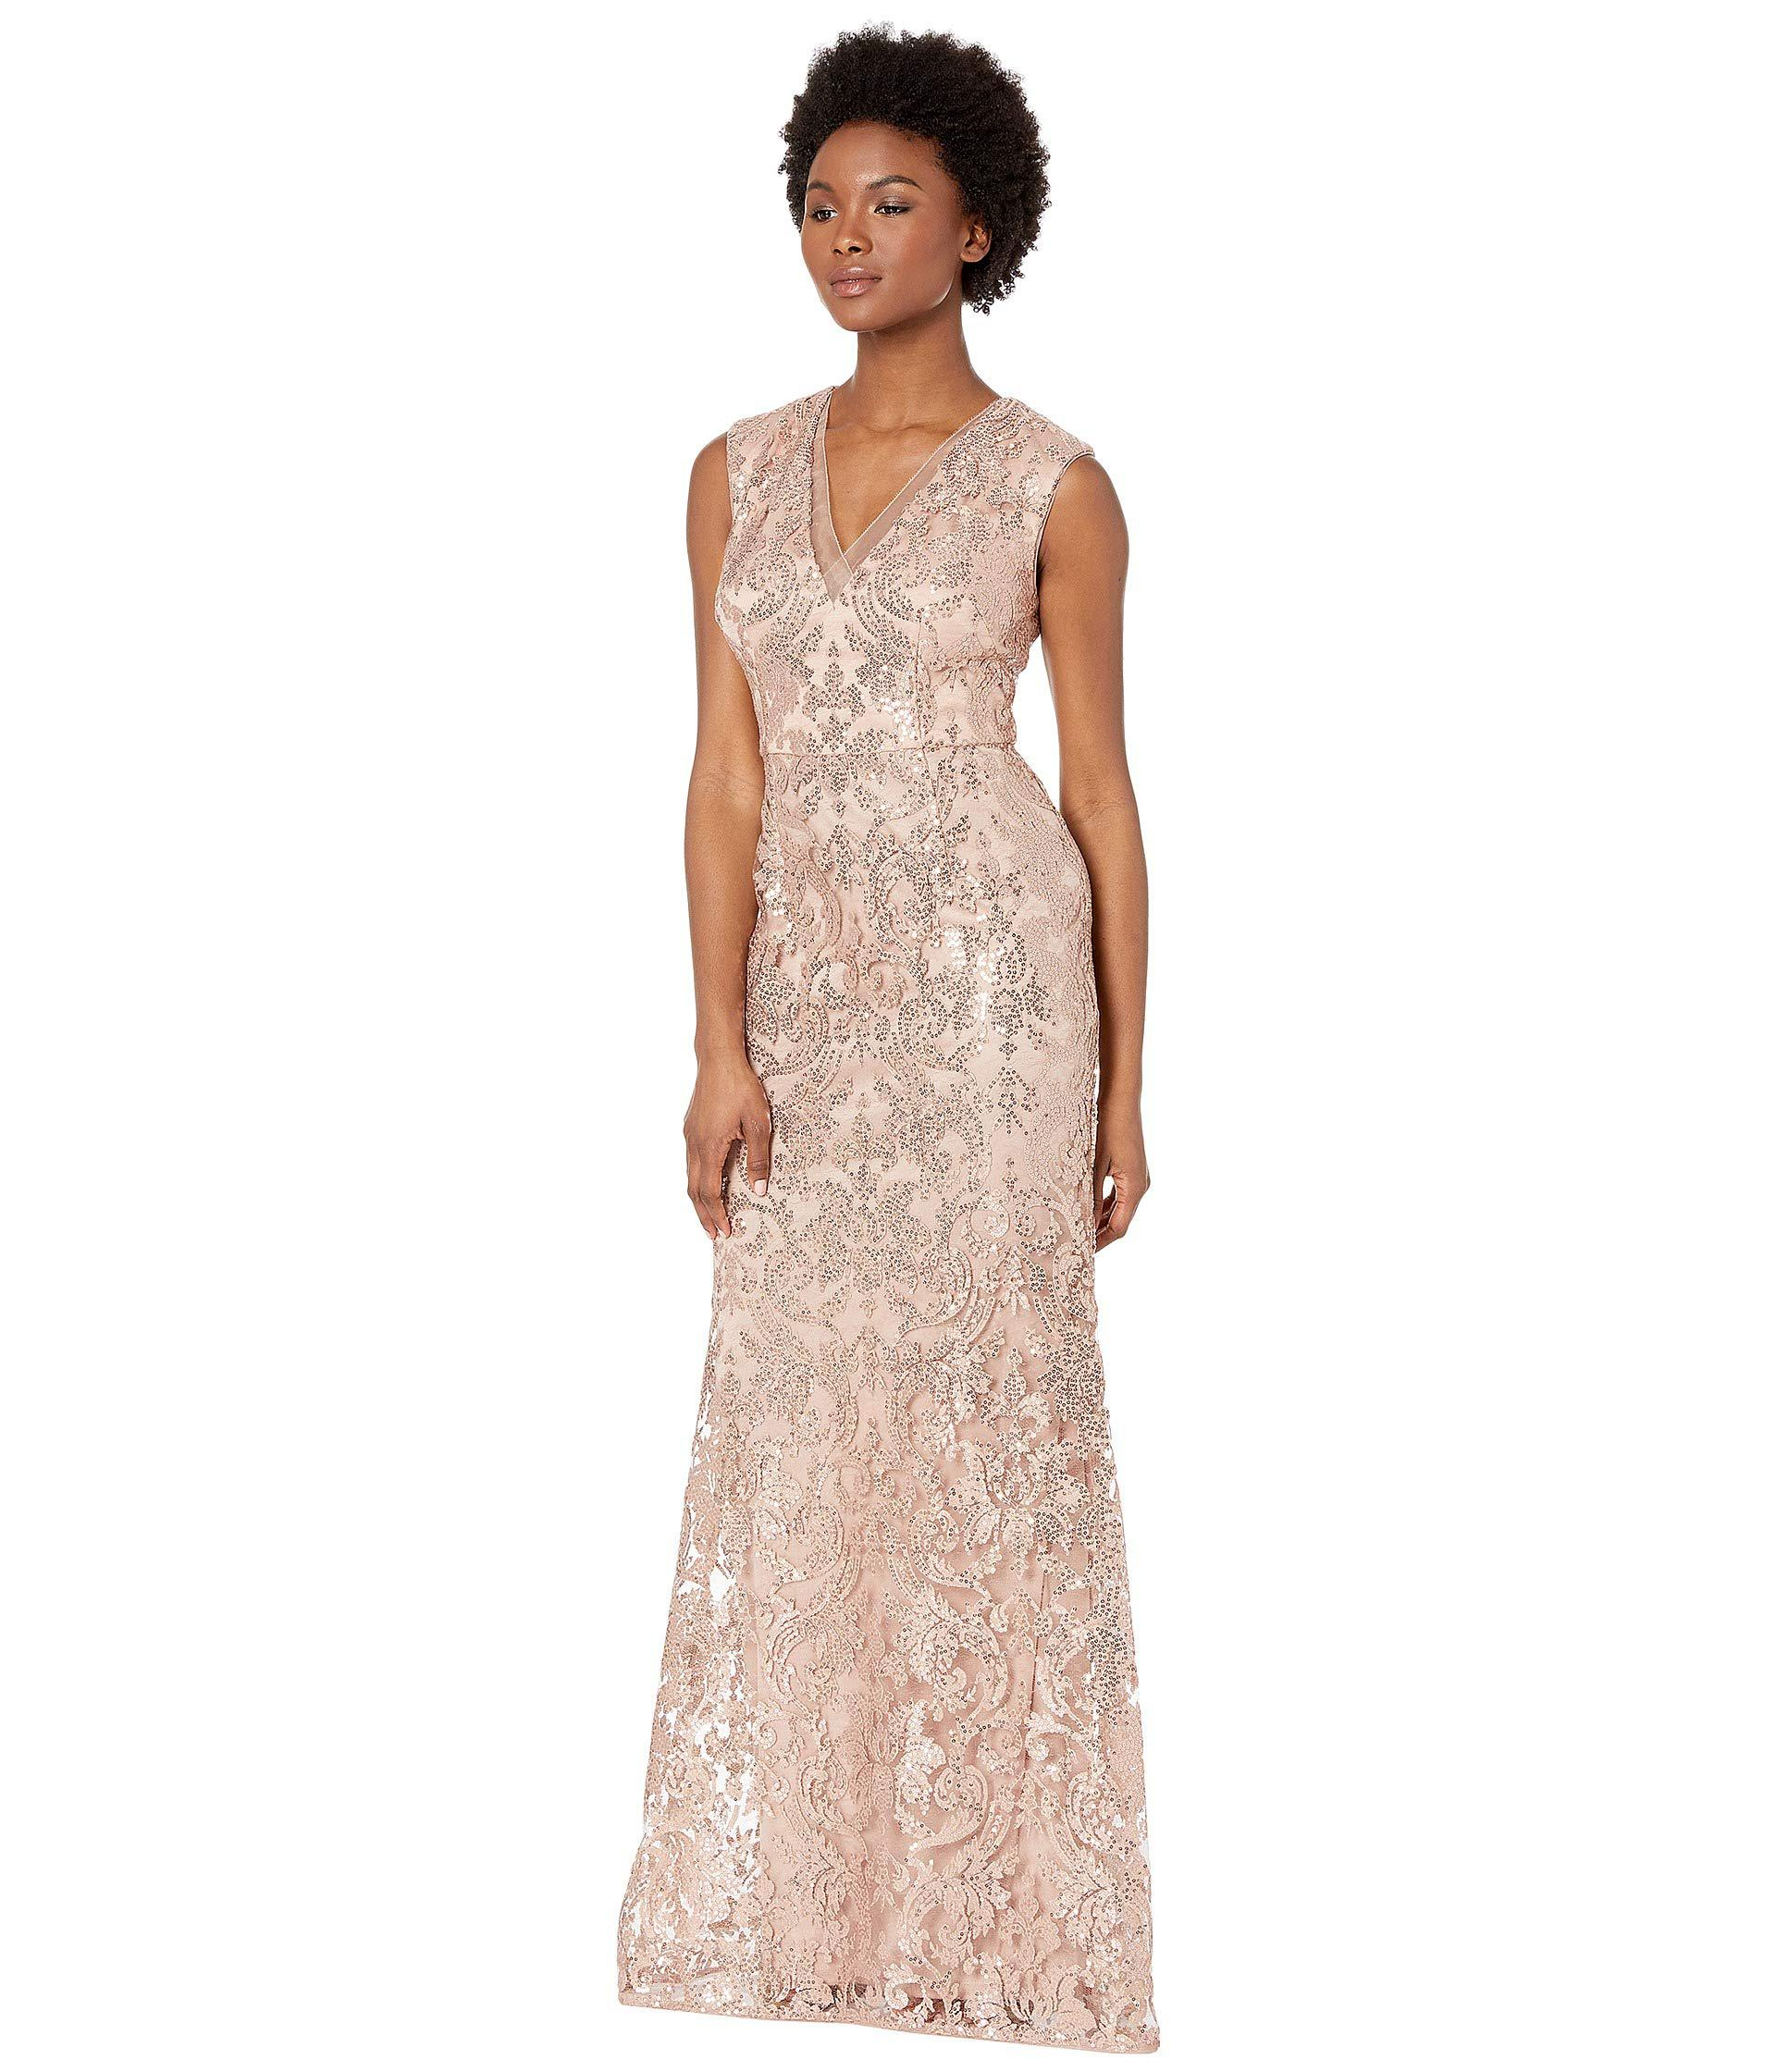 ca756b86543fe2 Adrianna Papell V-neckline All Over Sequin Embroidery Modified ...